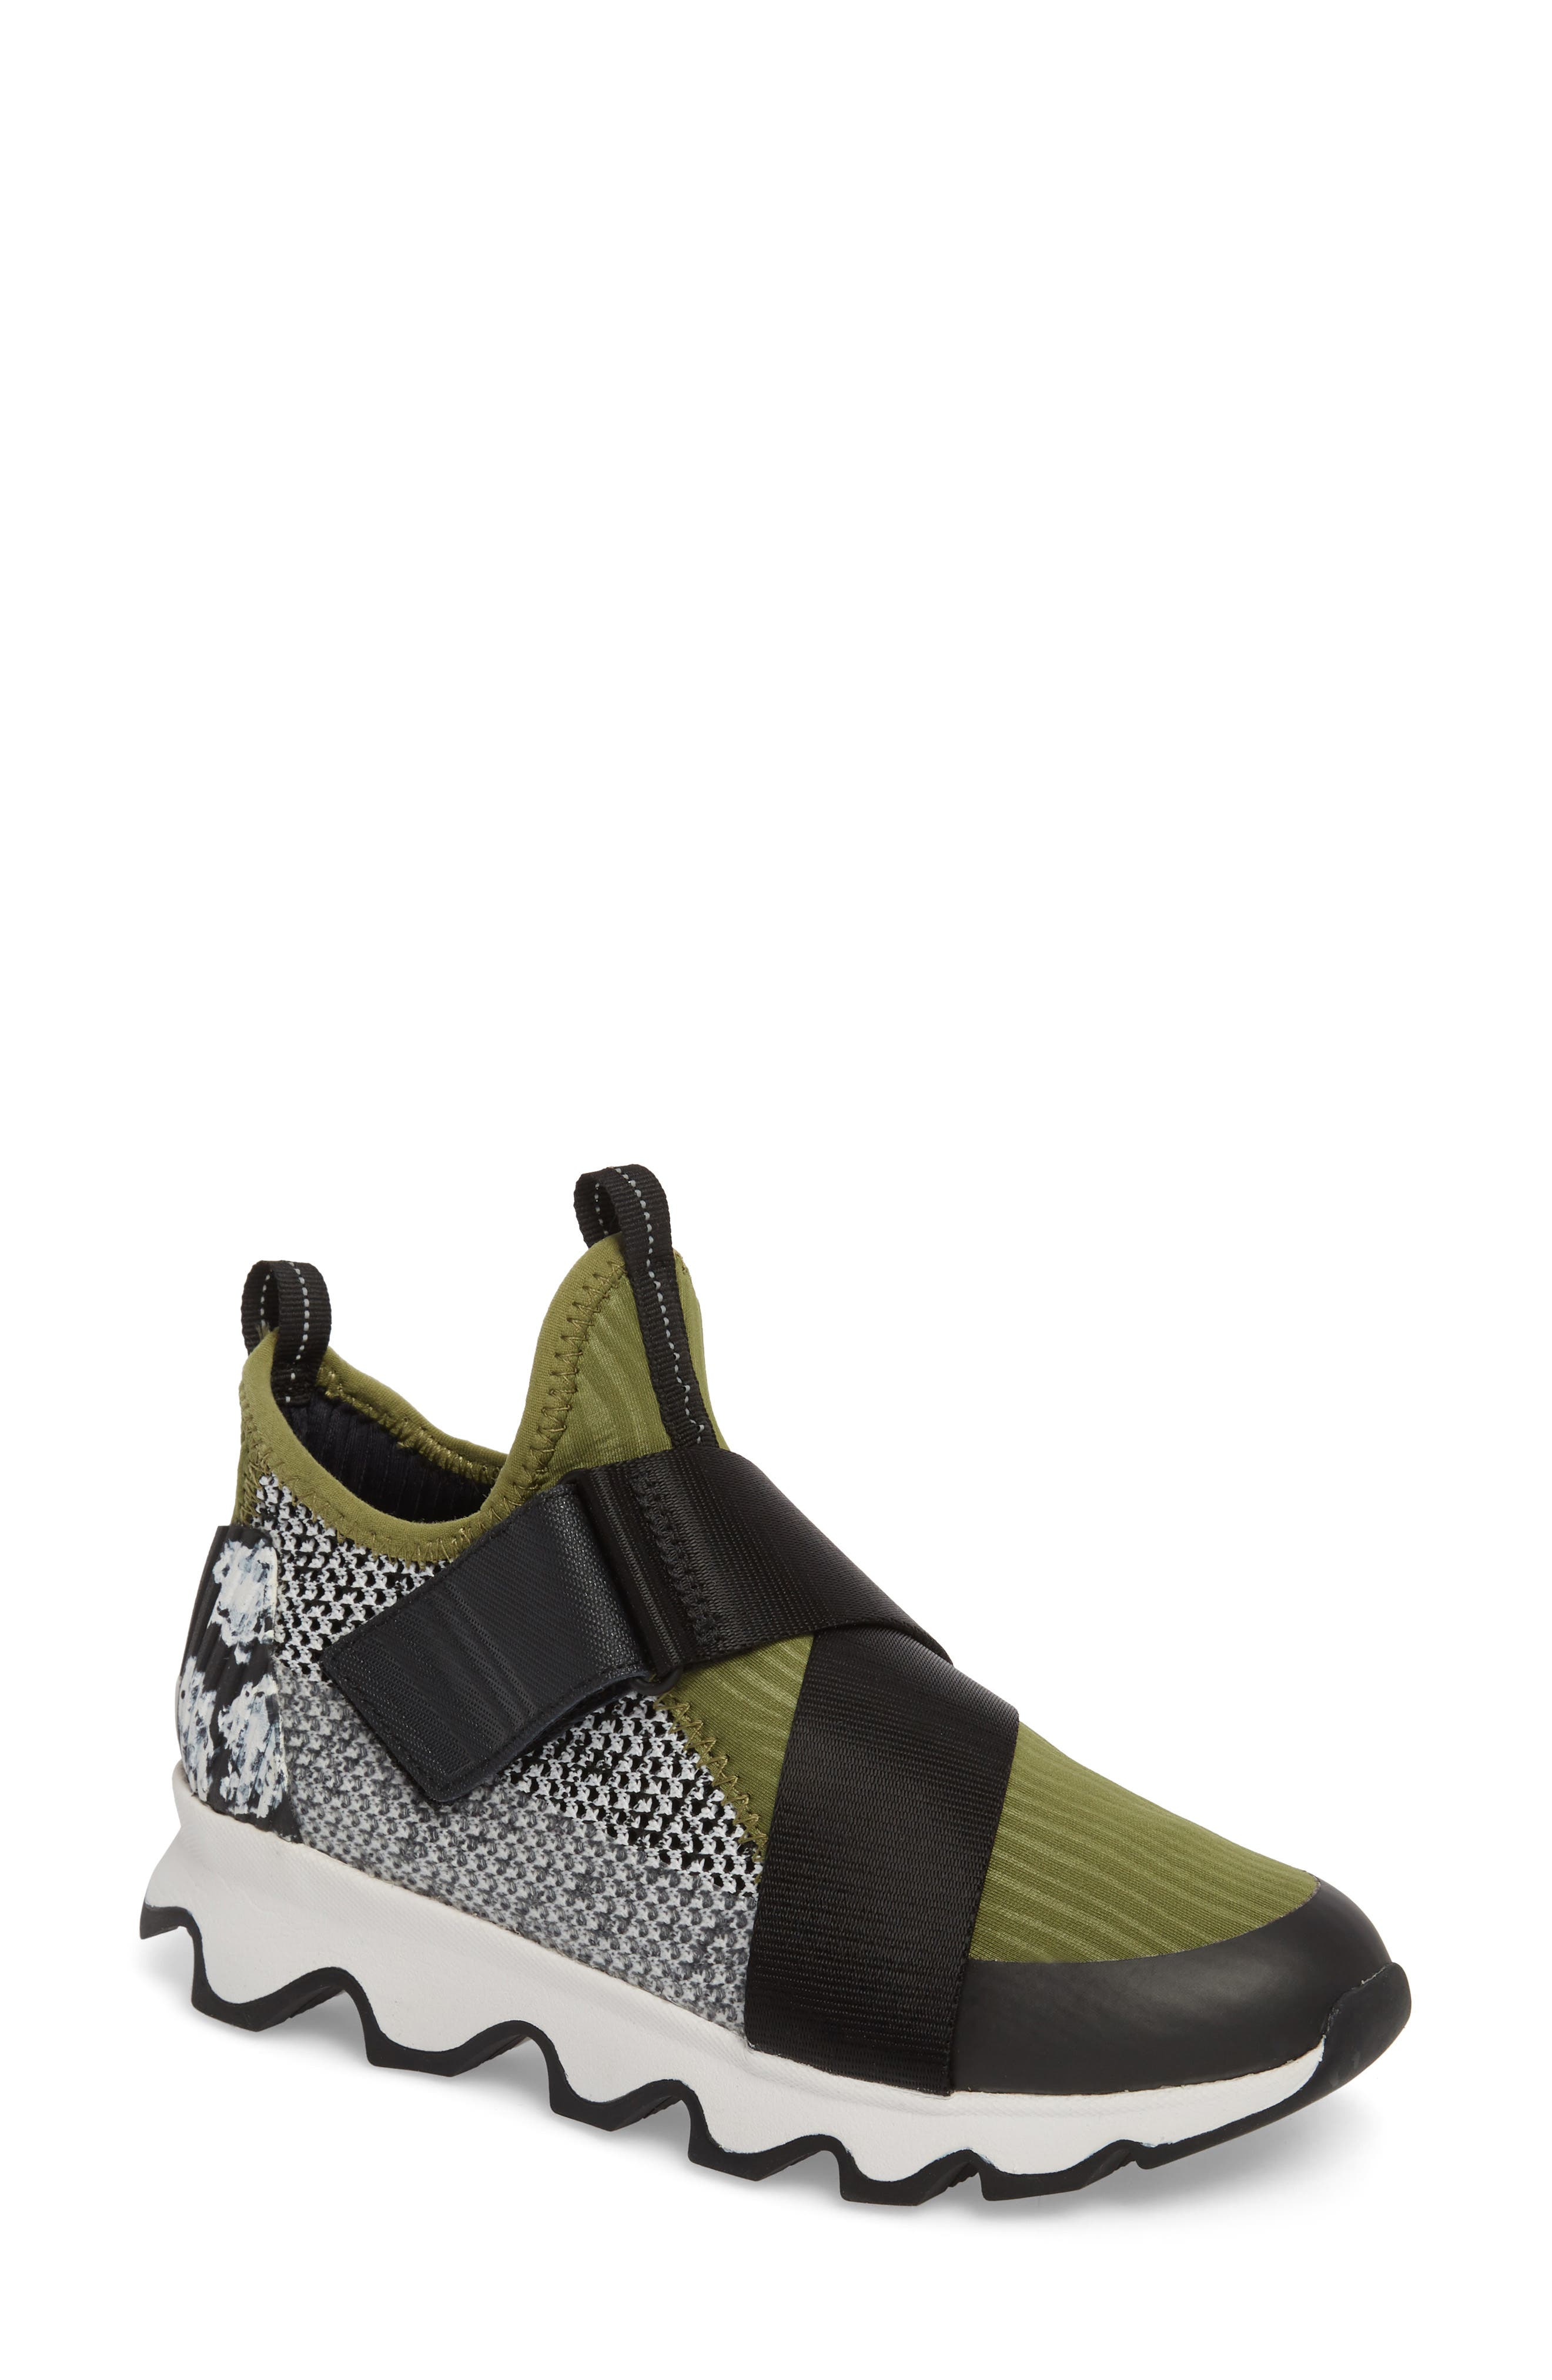 Kinetic Sneak High Top Sneaker,                         Main,                         color, Olive Drab/ White